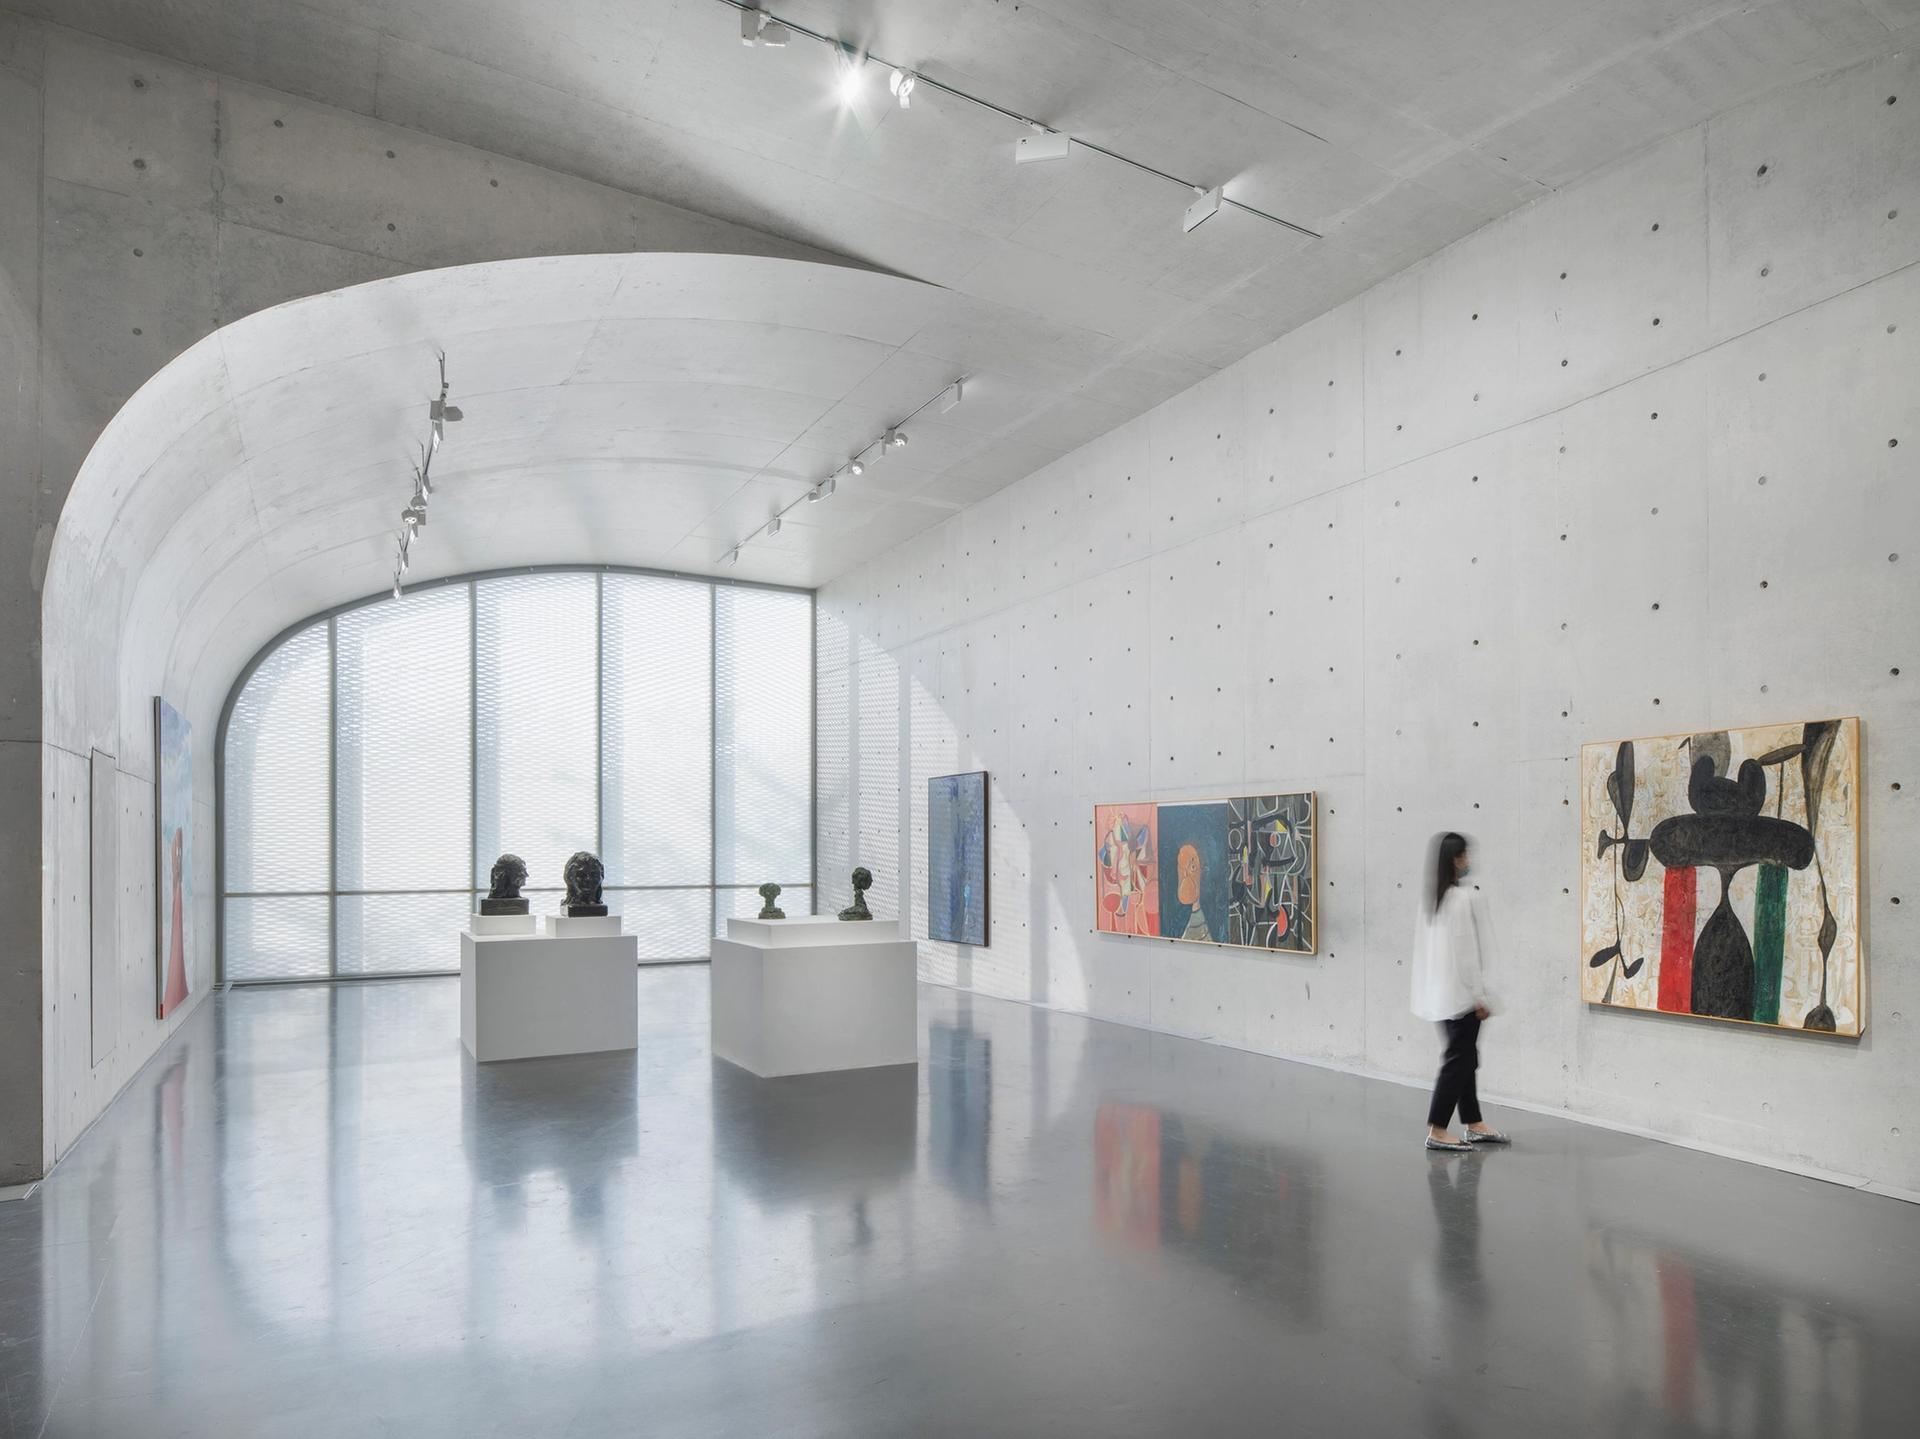 Installation view of George Condo: The Picture Gallery, at Long Museum (West Bund), Shanghai, 2021. © George Condo. Courtesy the artist and Hauser & Wirth. Photo: JJYPHOTO